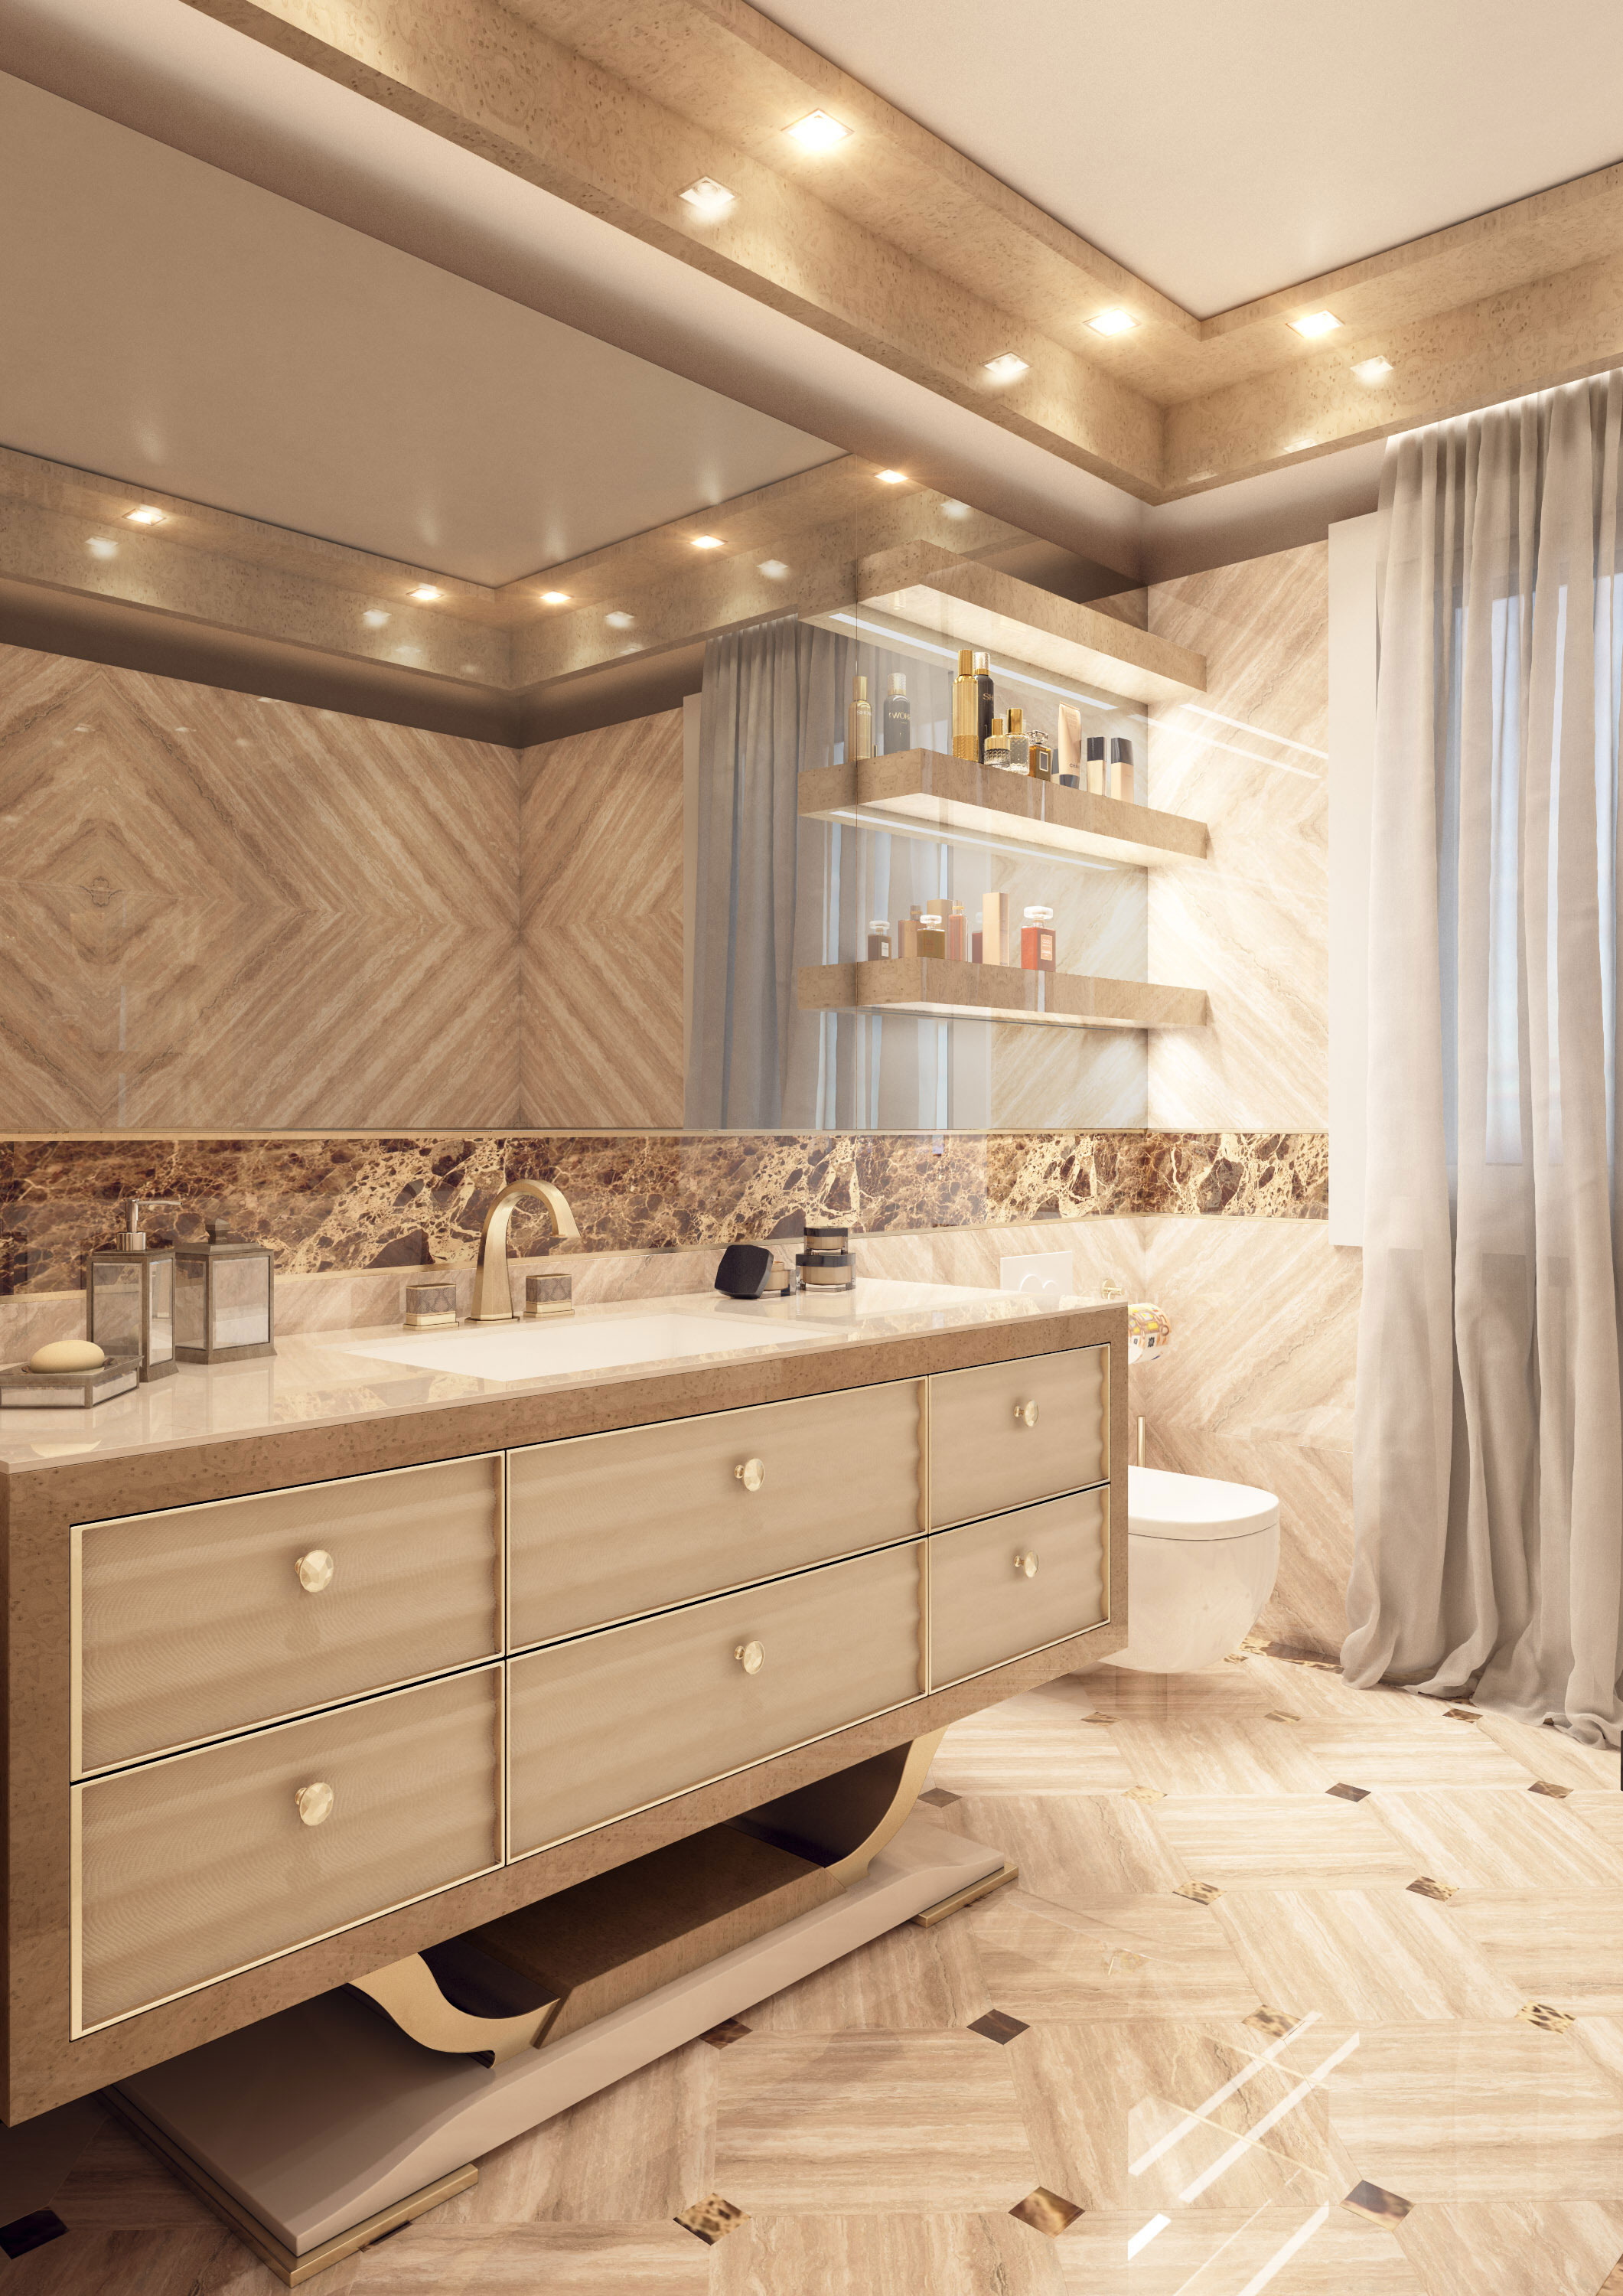 Faoma modern bathroom furniture